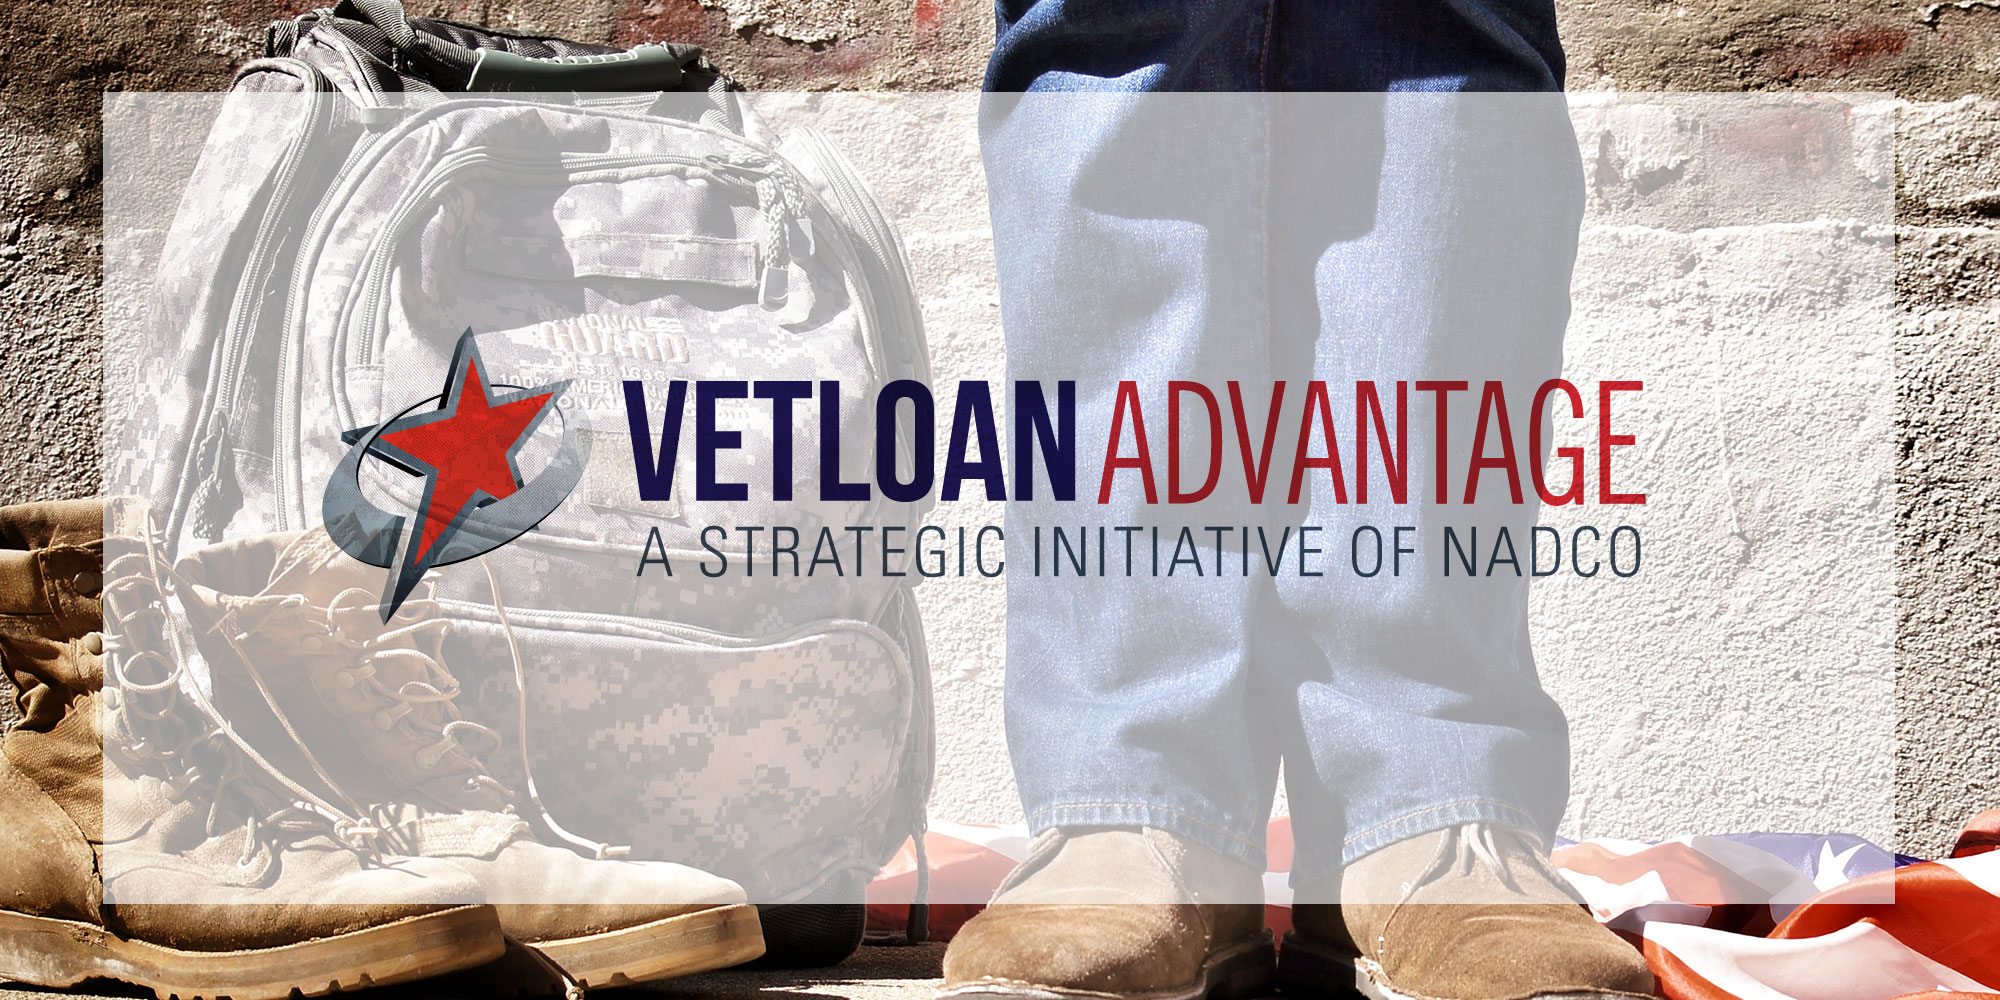 Vetloan Advantage